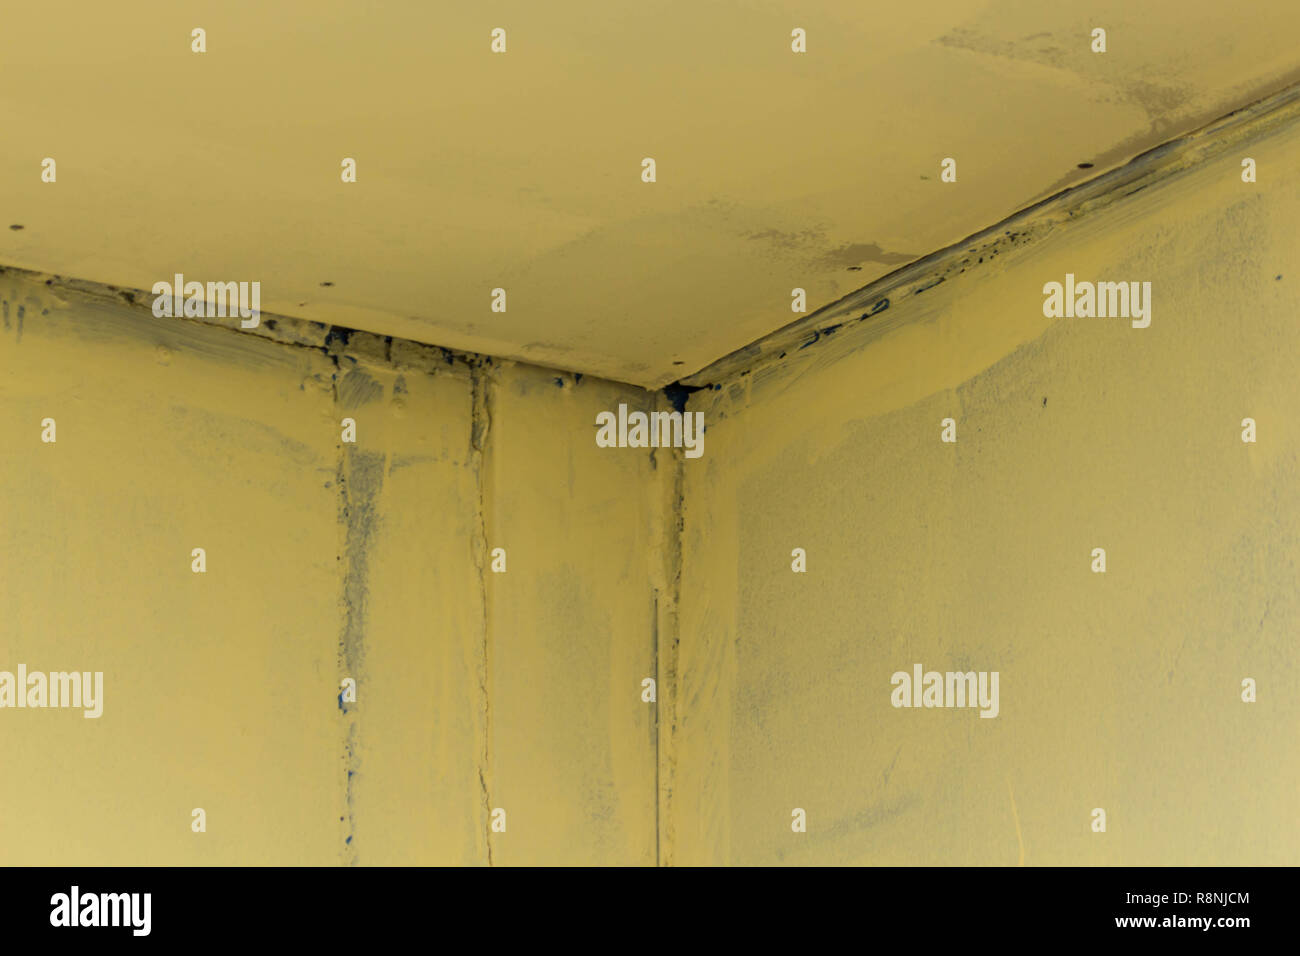 An iron corner at the junction of the walls with seams of an incomprehensible color. Texture background Stock Photo